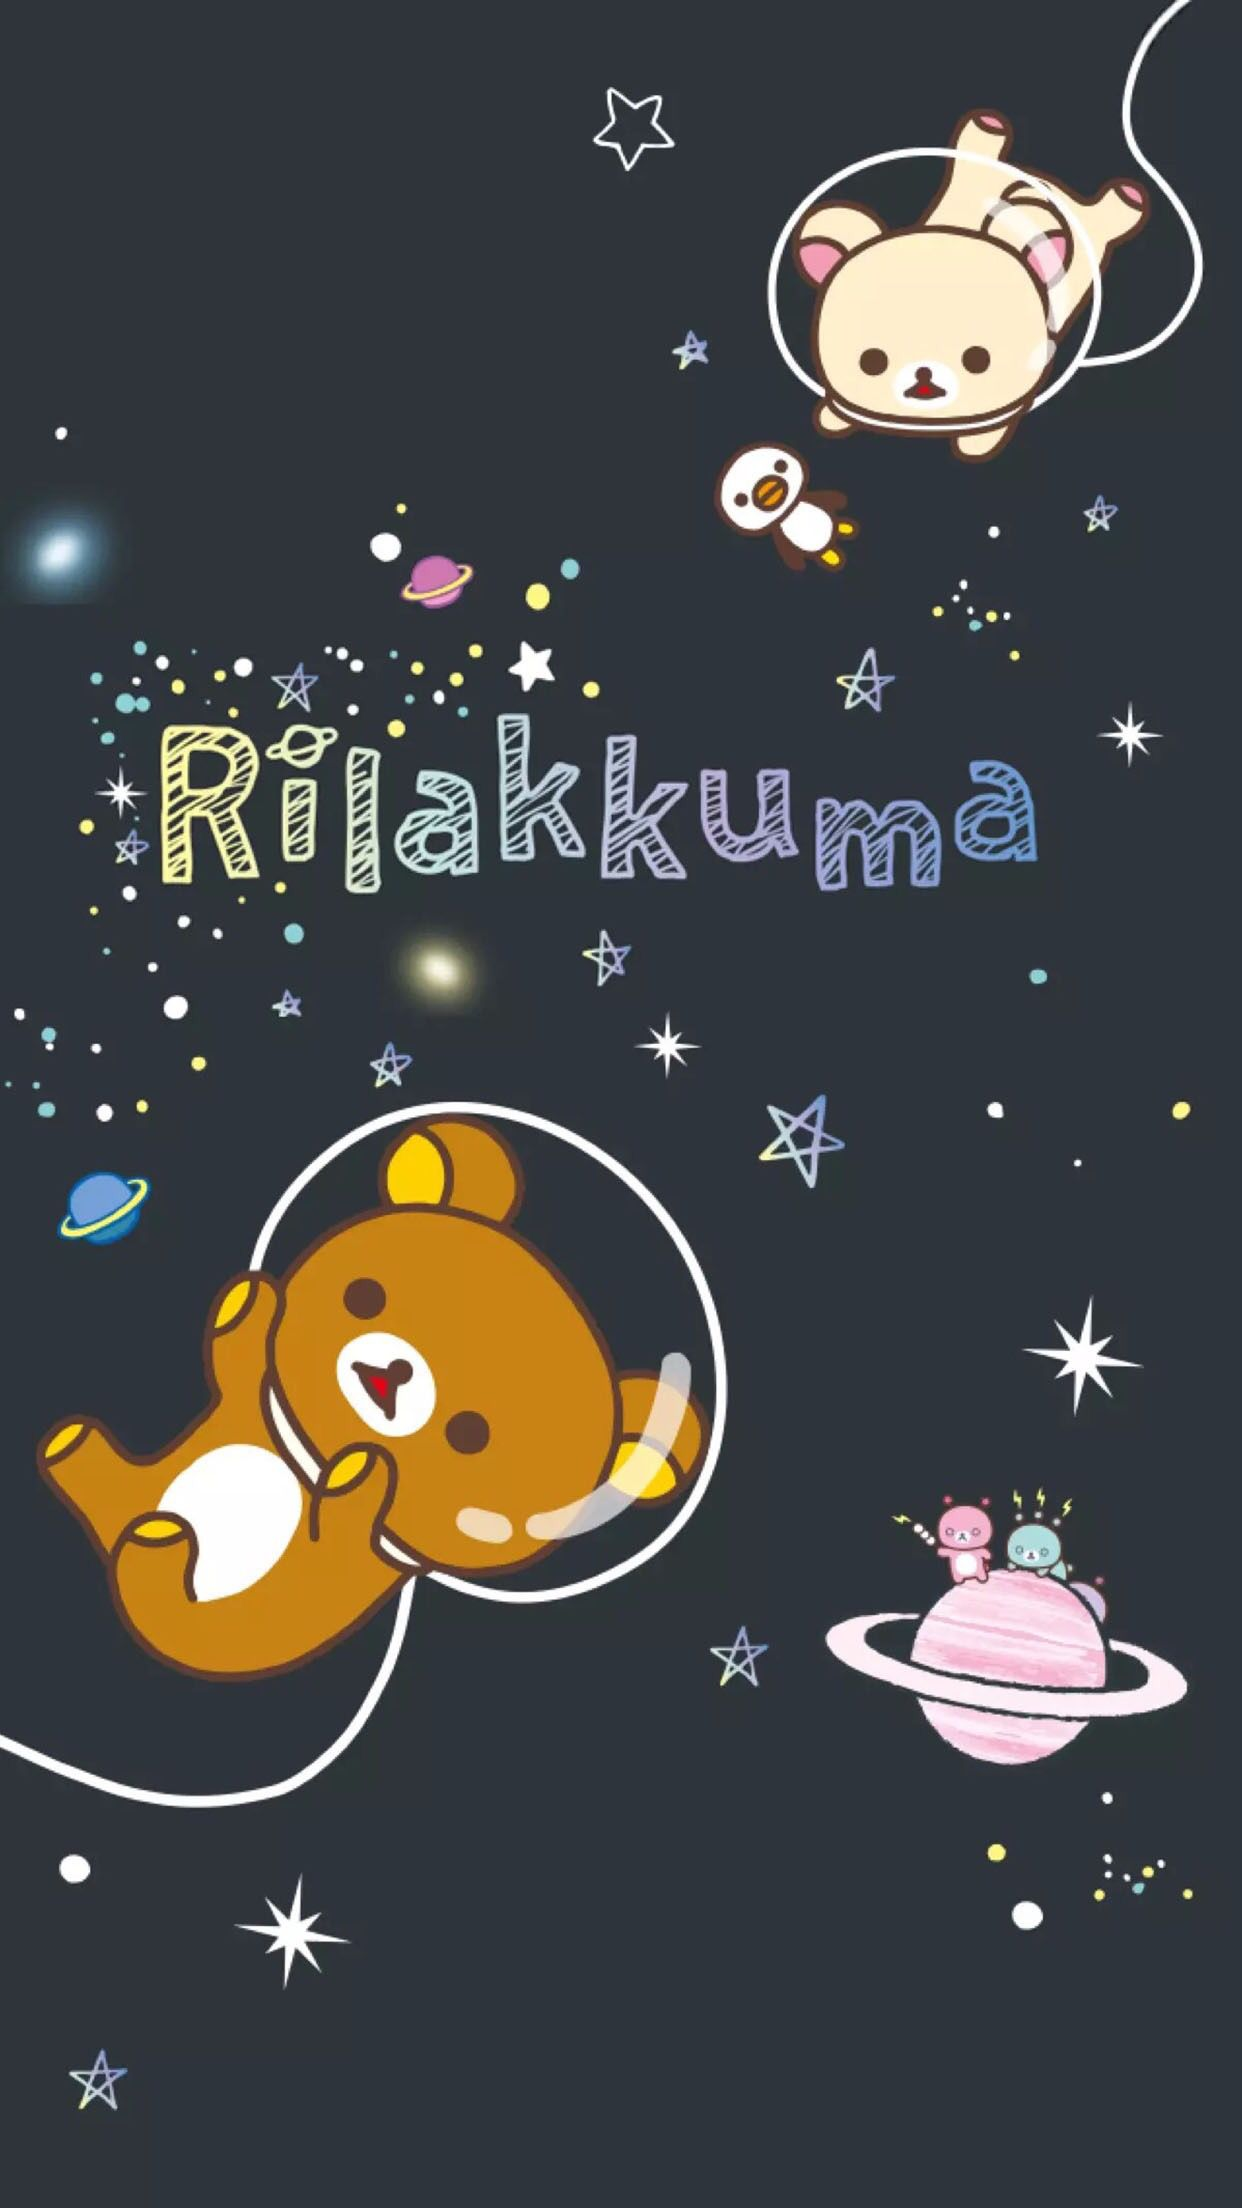 Rilakkuma Wallpapers   Top Rilakkuma Backgrounds 1242x2208